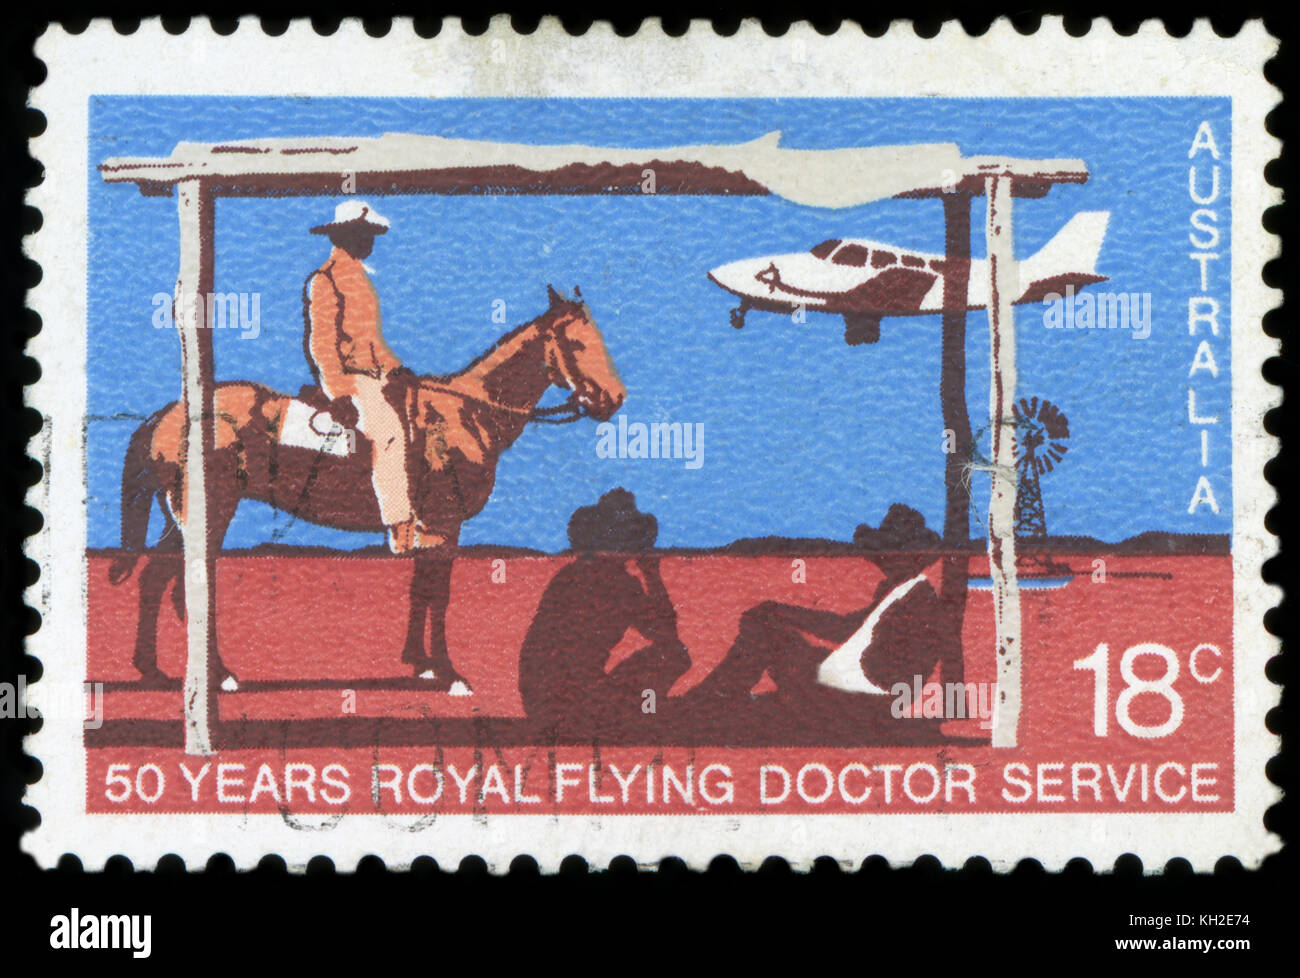 AUSTRALIA - CIRCA 1978: A stamp printed in Australia shows the Beechcraft Baron landing, Royal Flying Doctor Service, - Stock Image